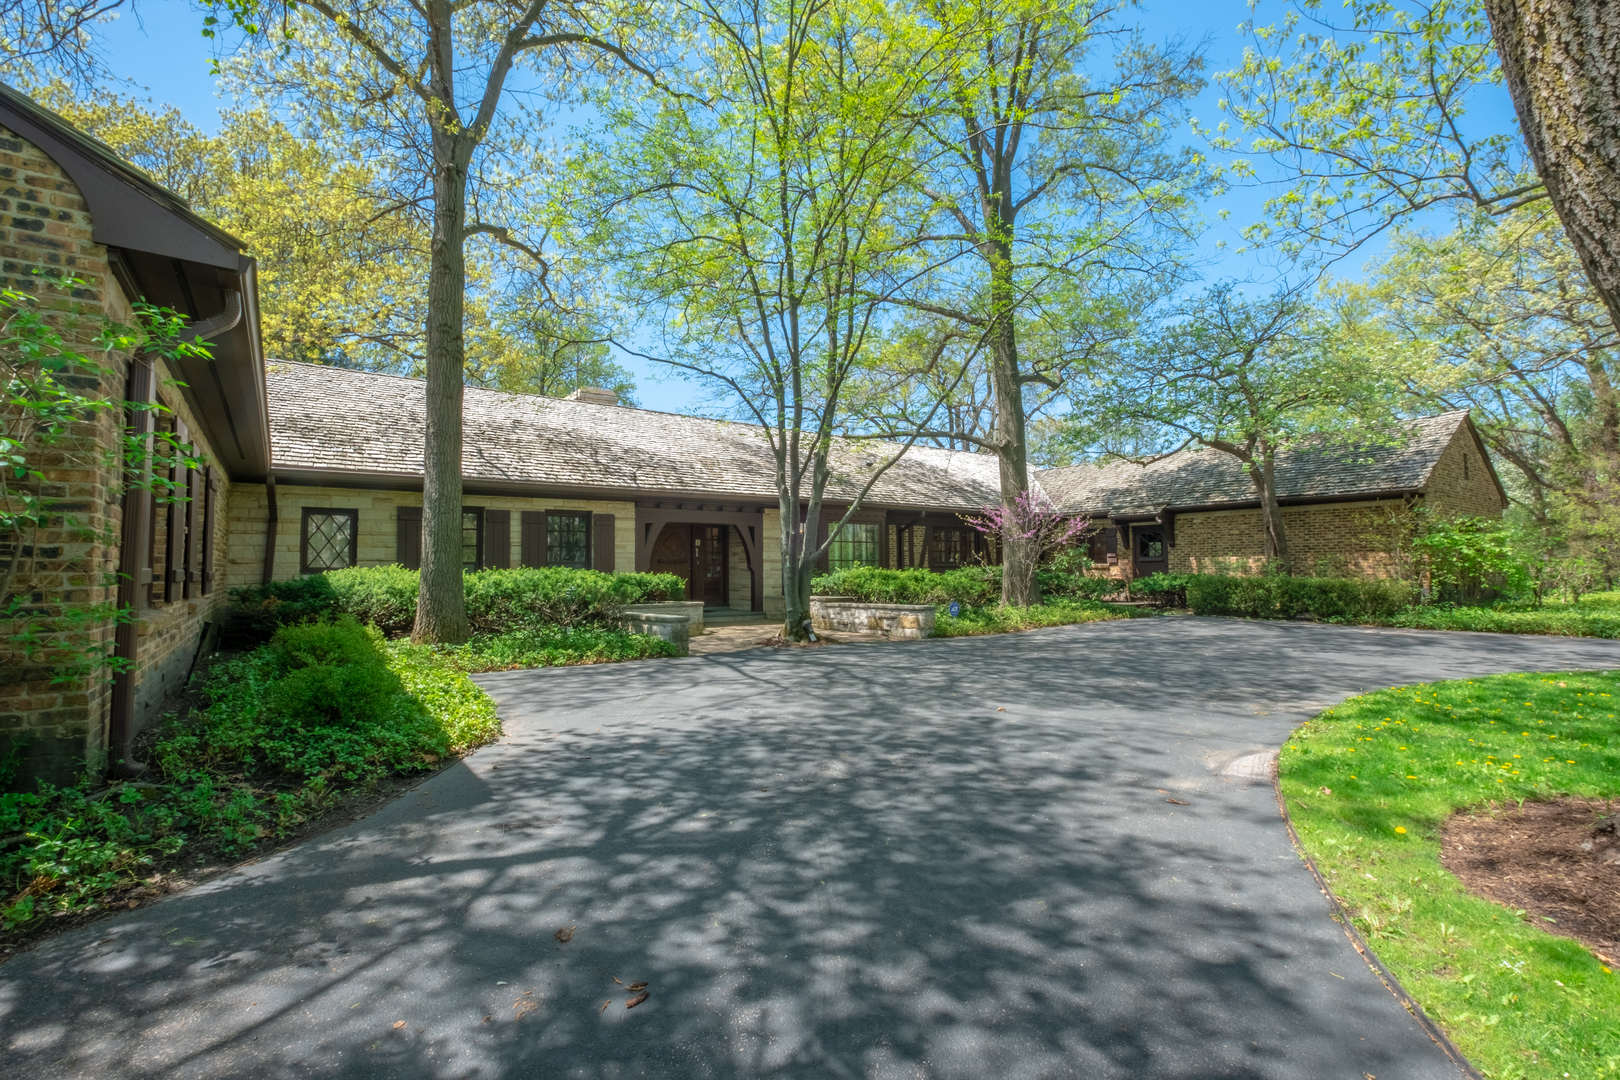 27 Bridlewood Road, Northbrook in Cook County, IL 60062 Home for Sale